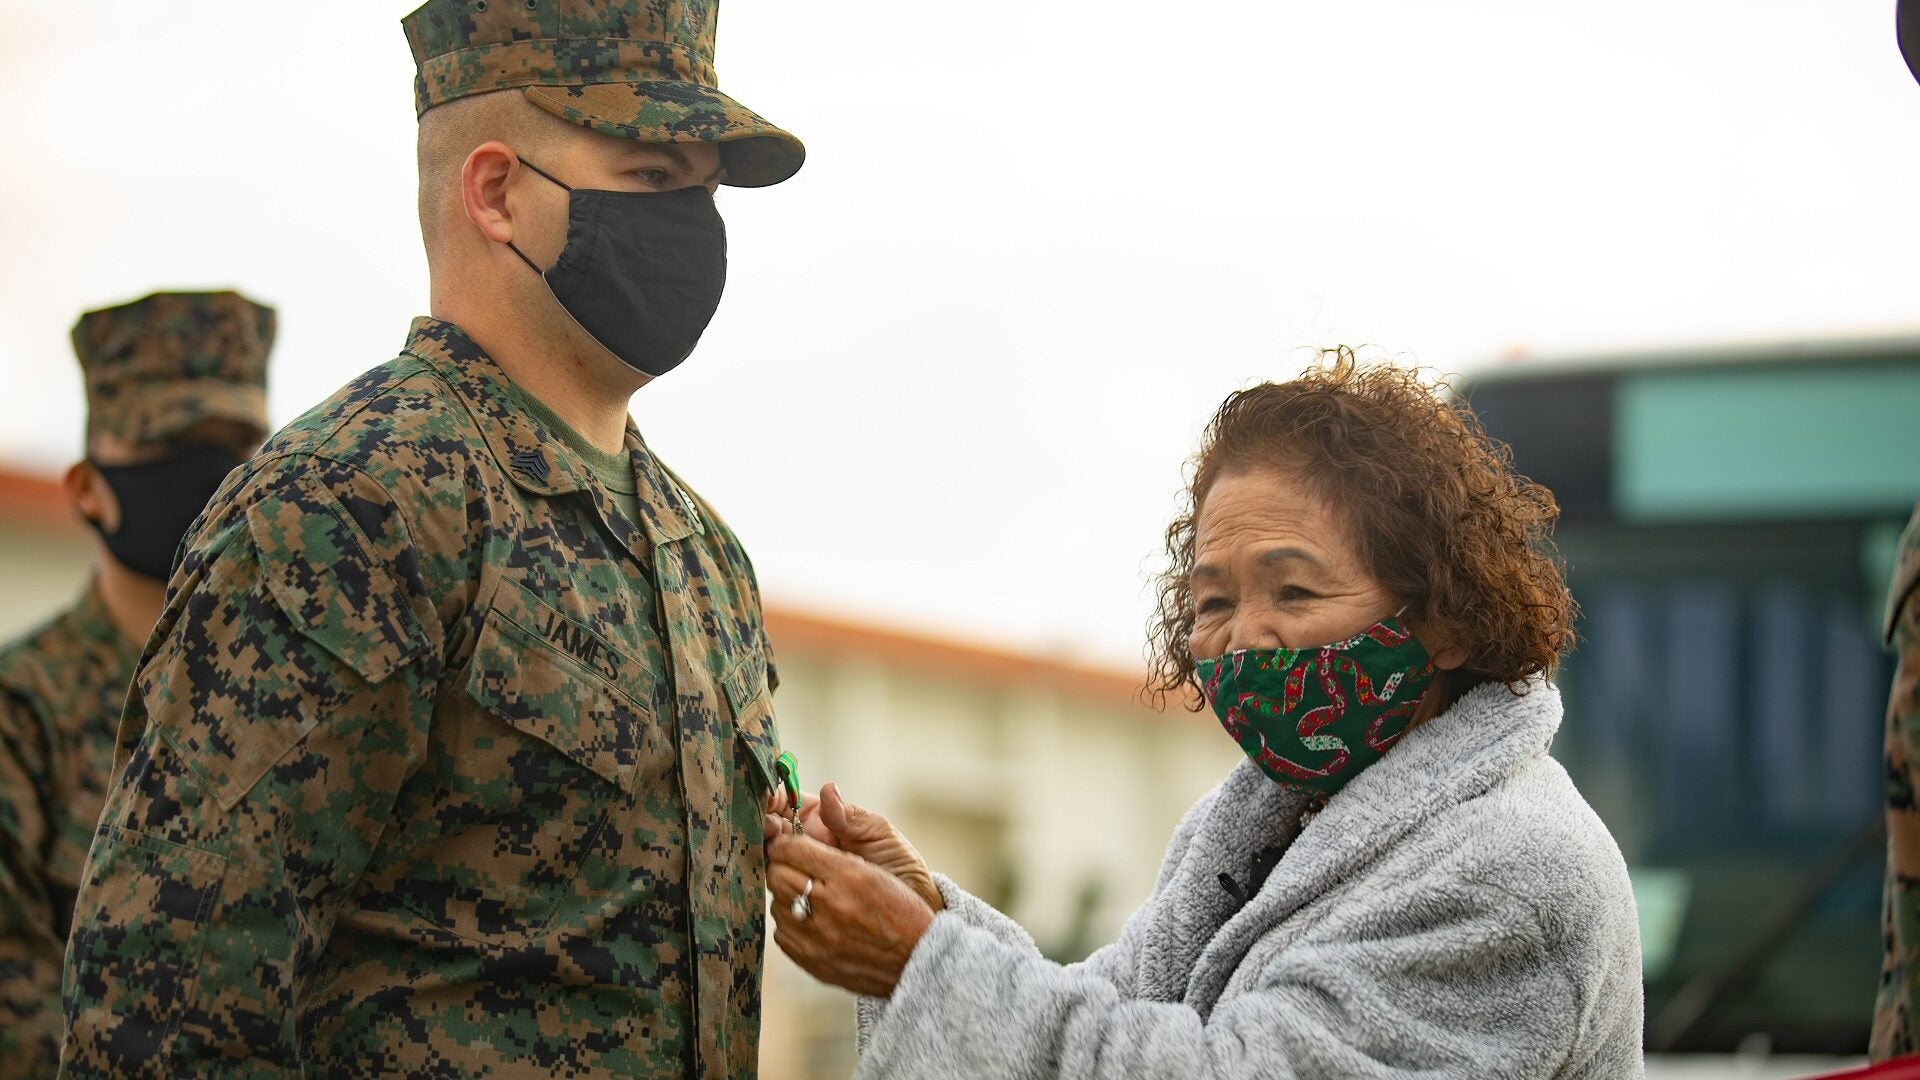 Marine awarded for saving elderly woman from deadly viper attack